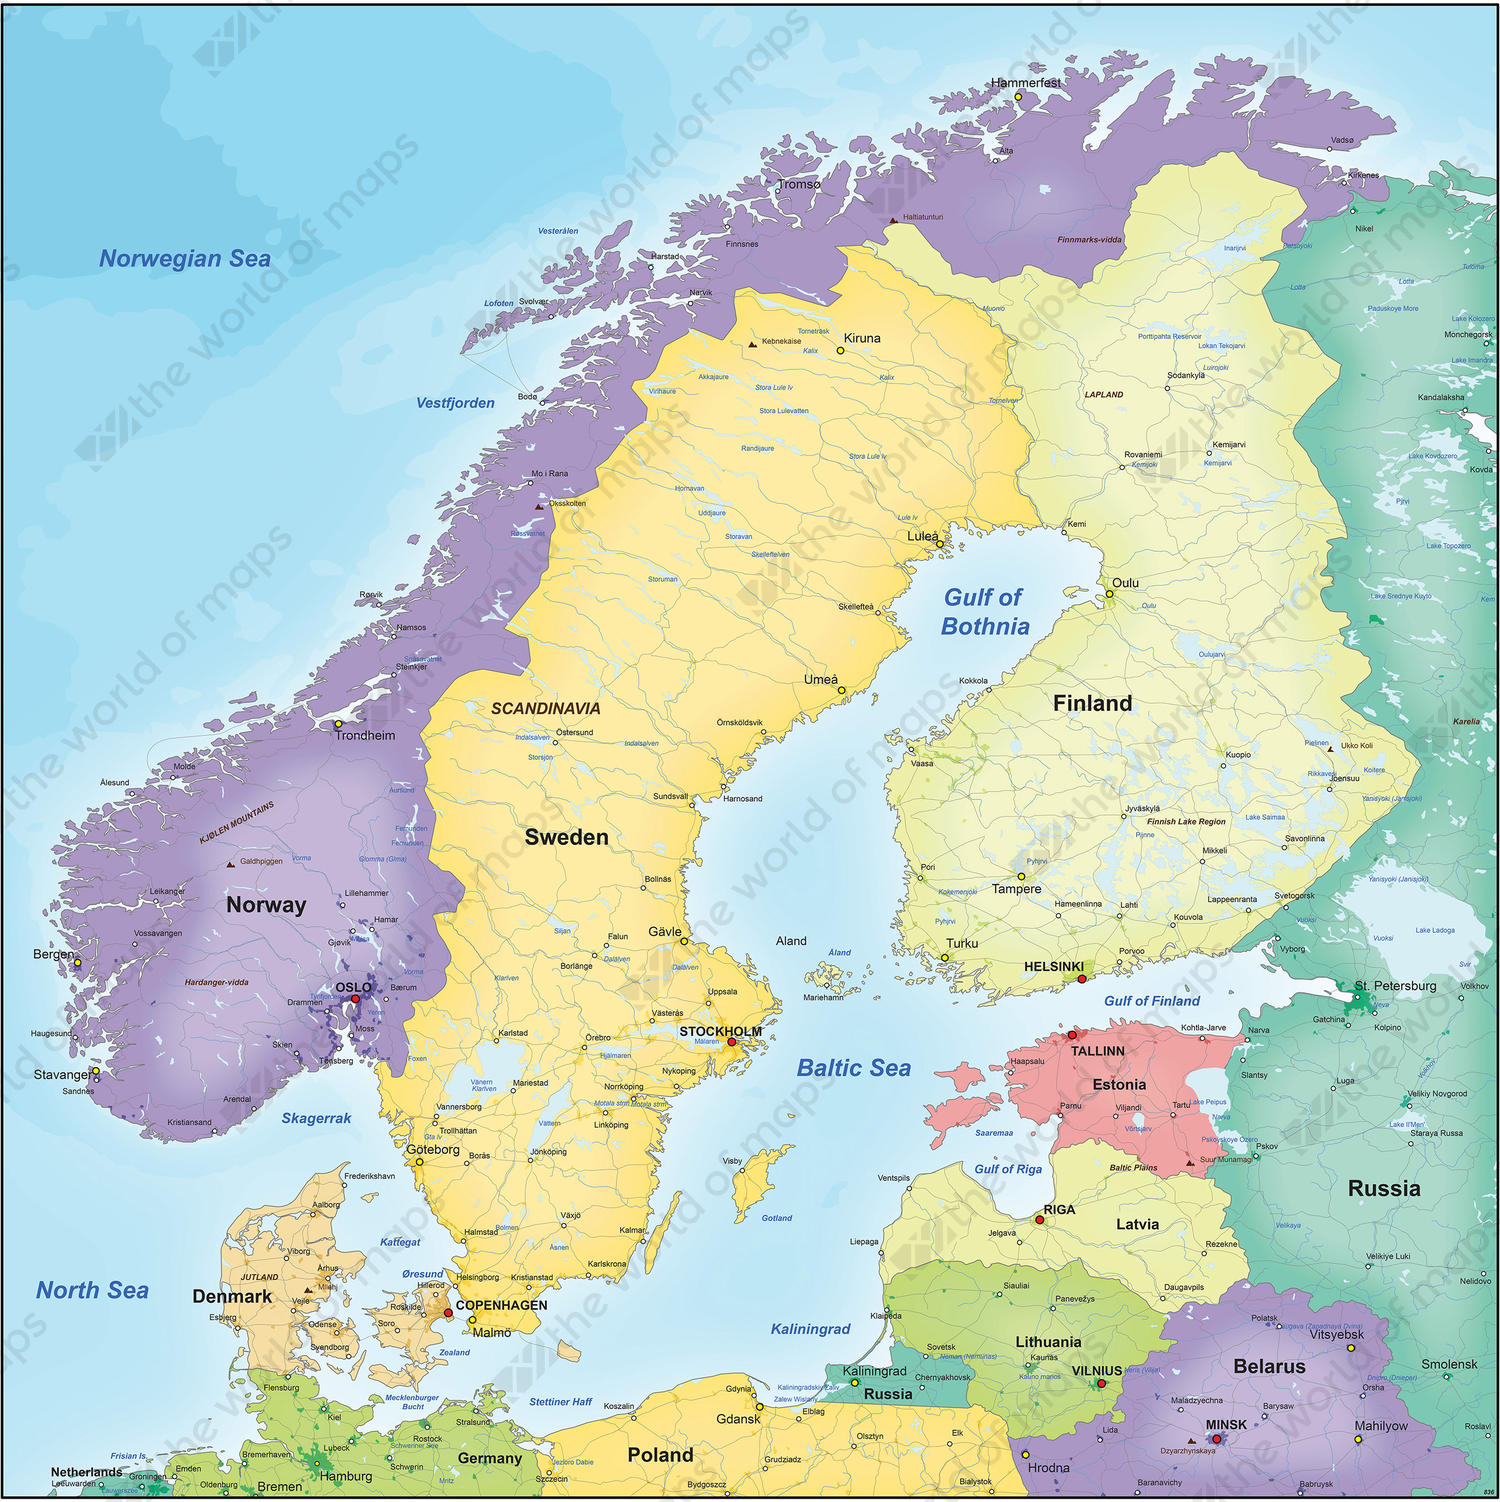 Picture of: Digital Political Map Scandinavia 836 The World Of Maps Com